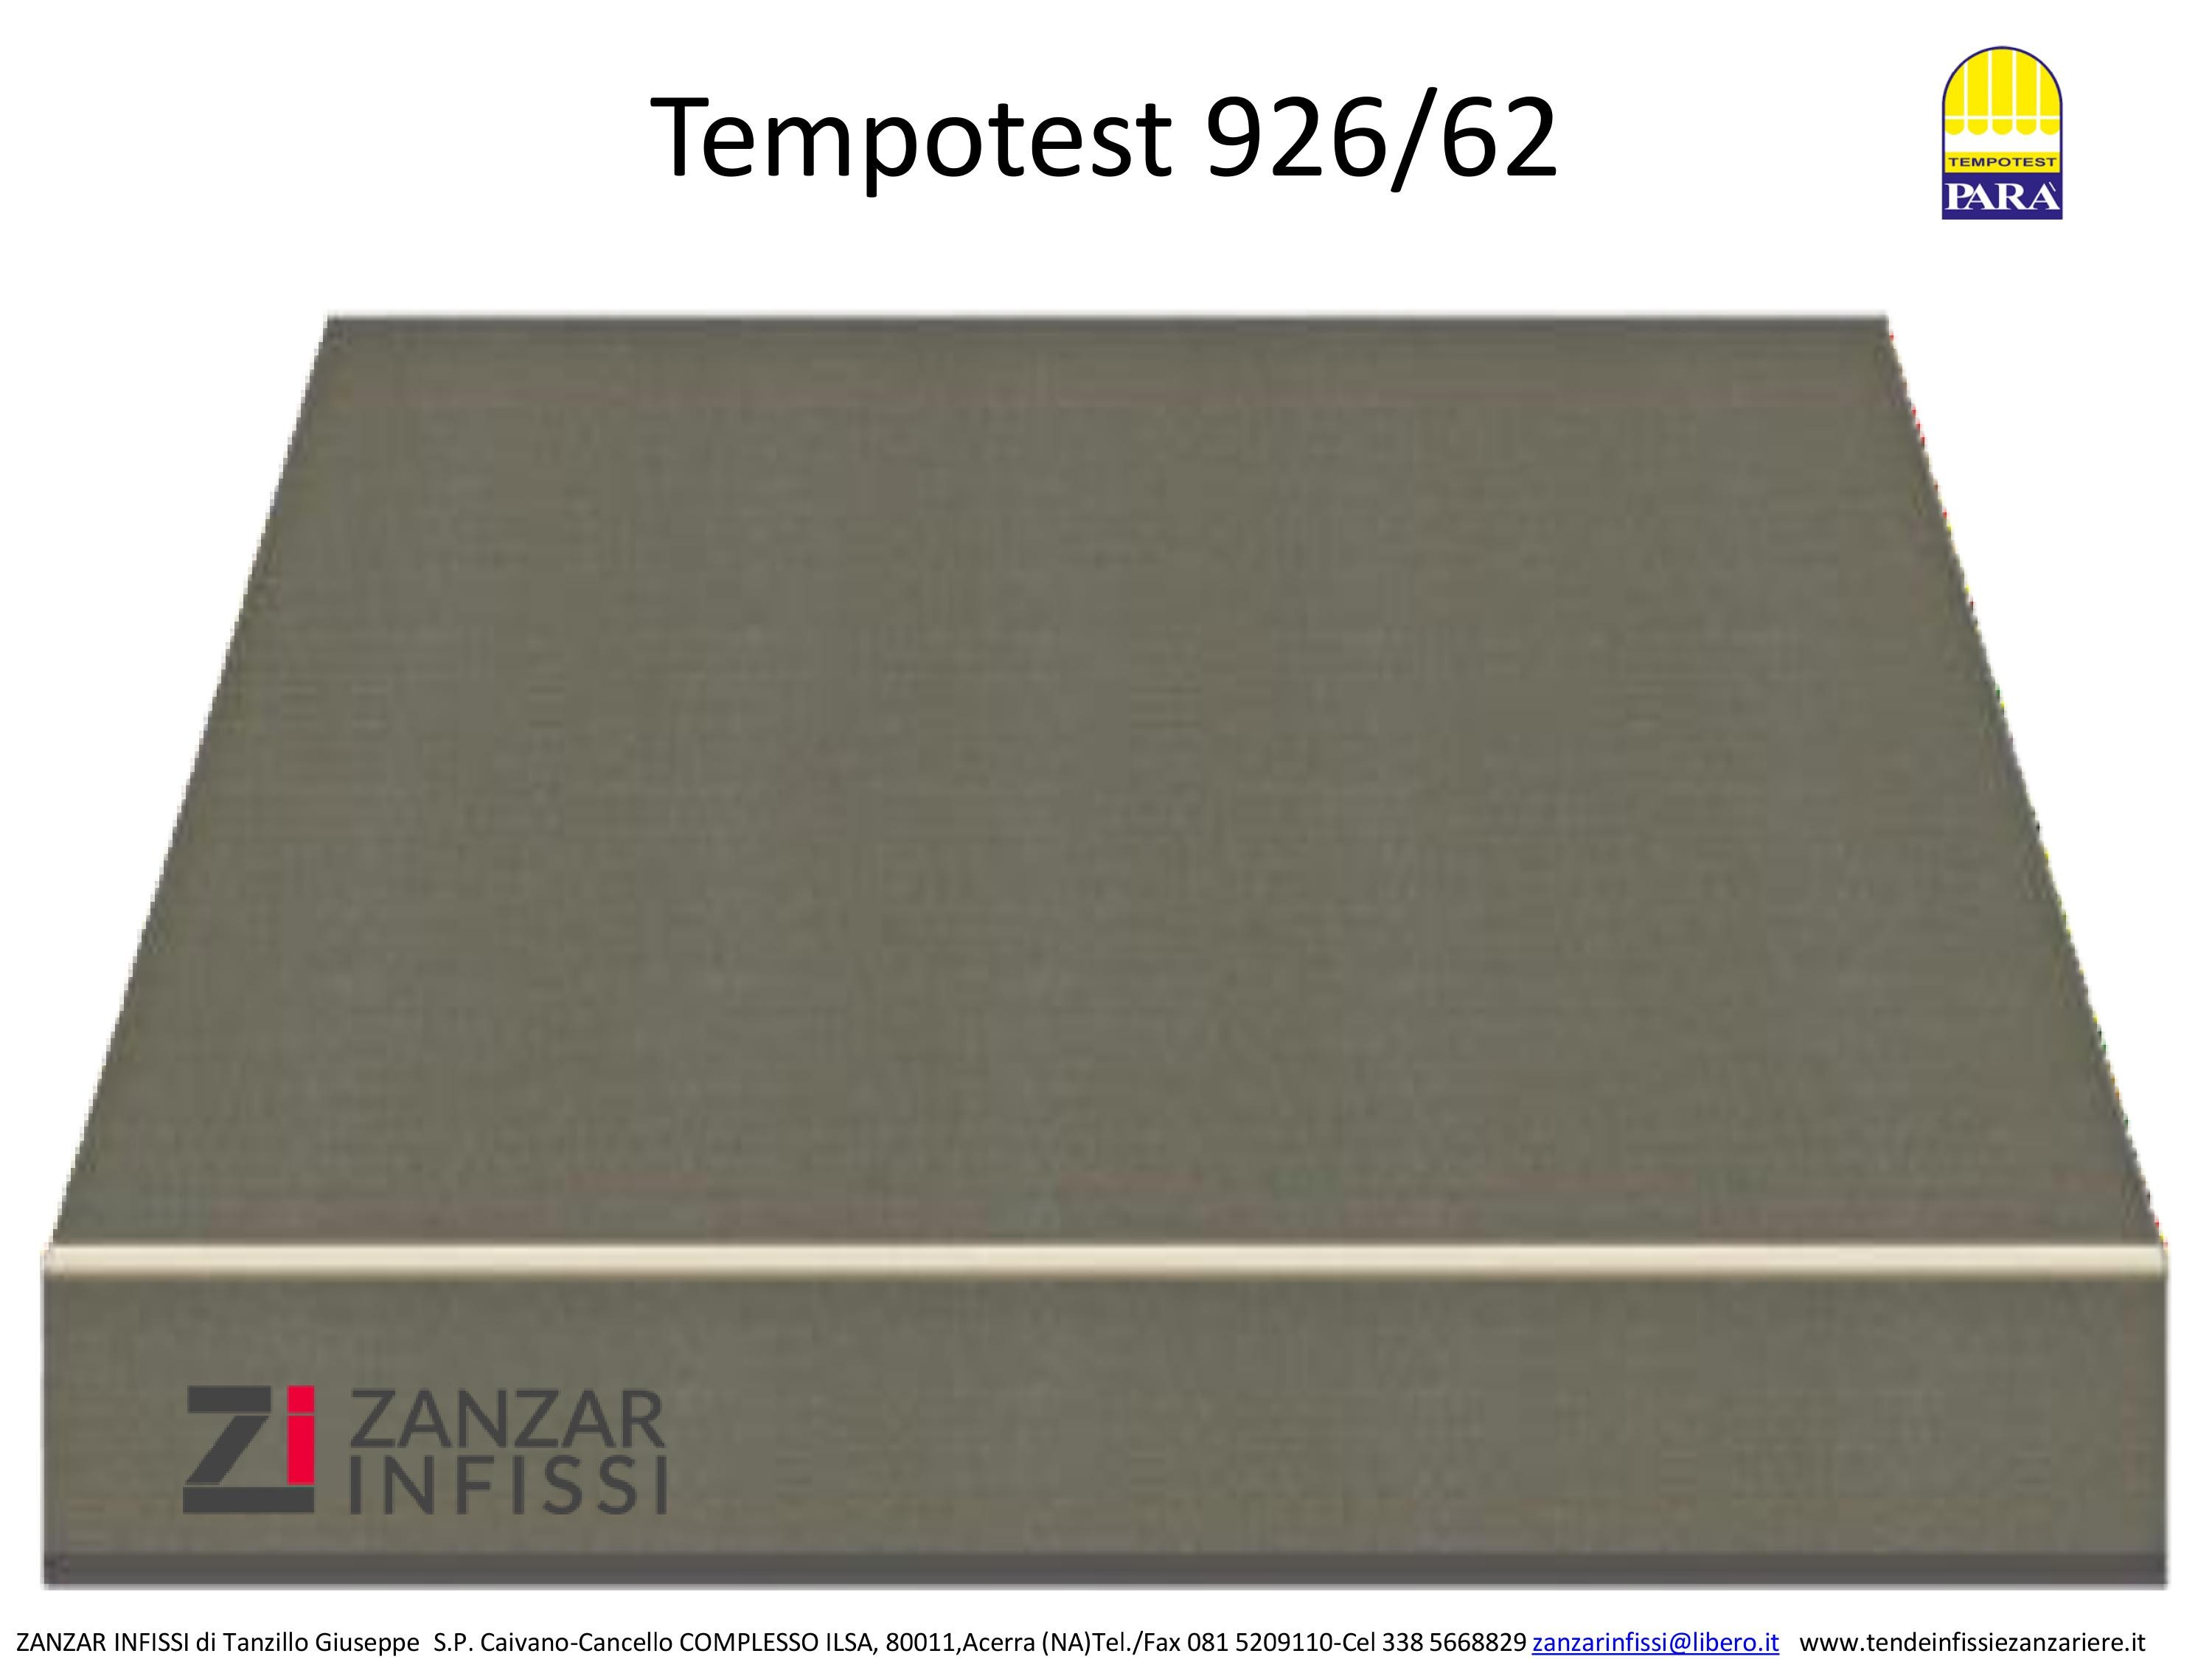 Tempotest 926/62